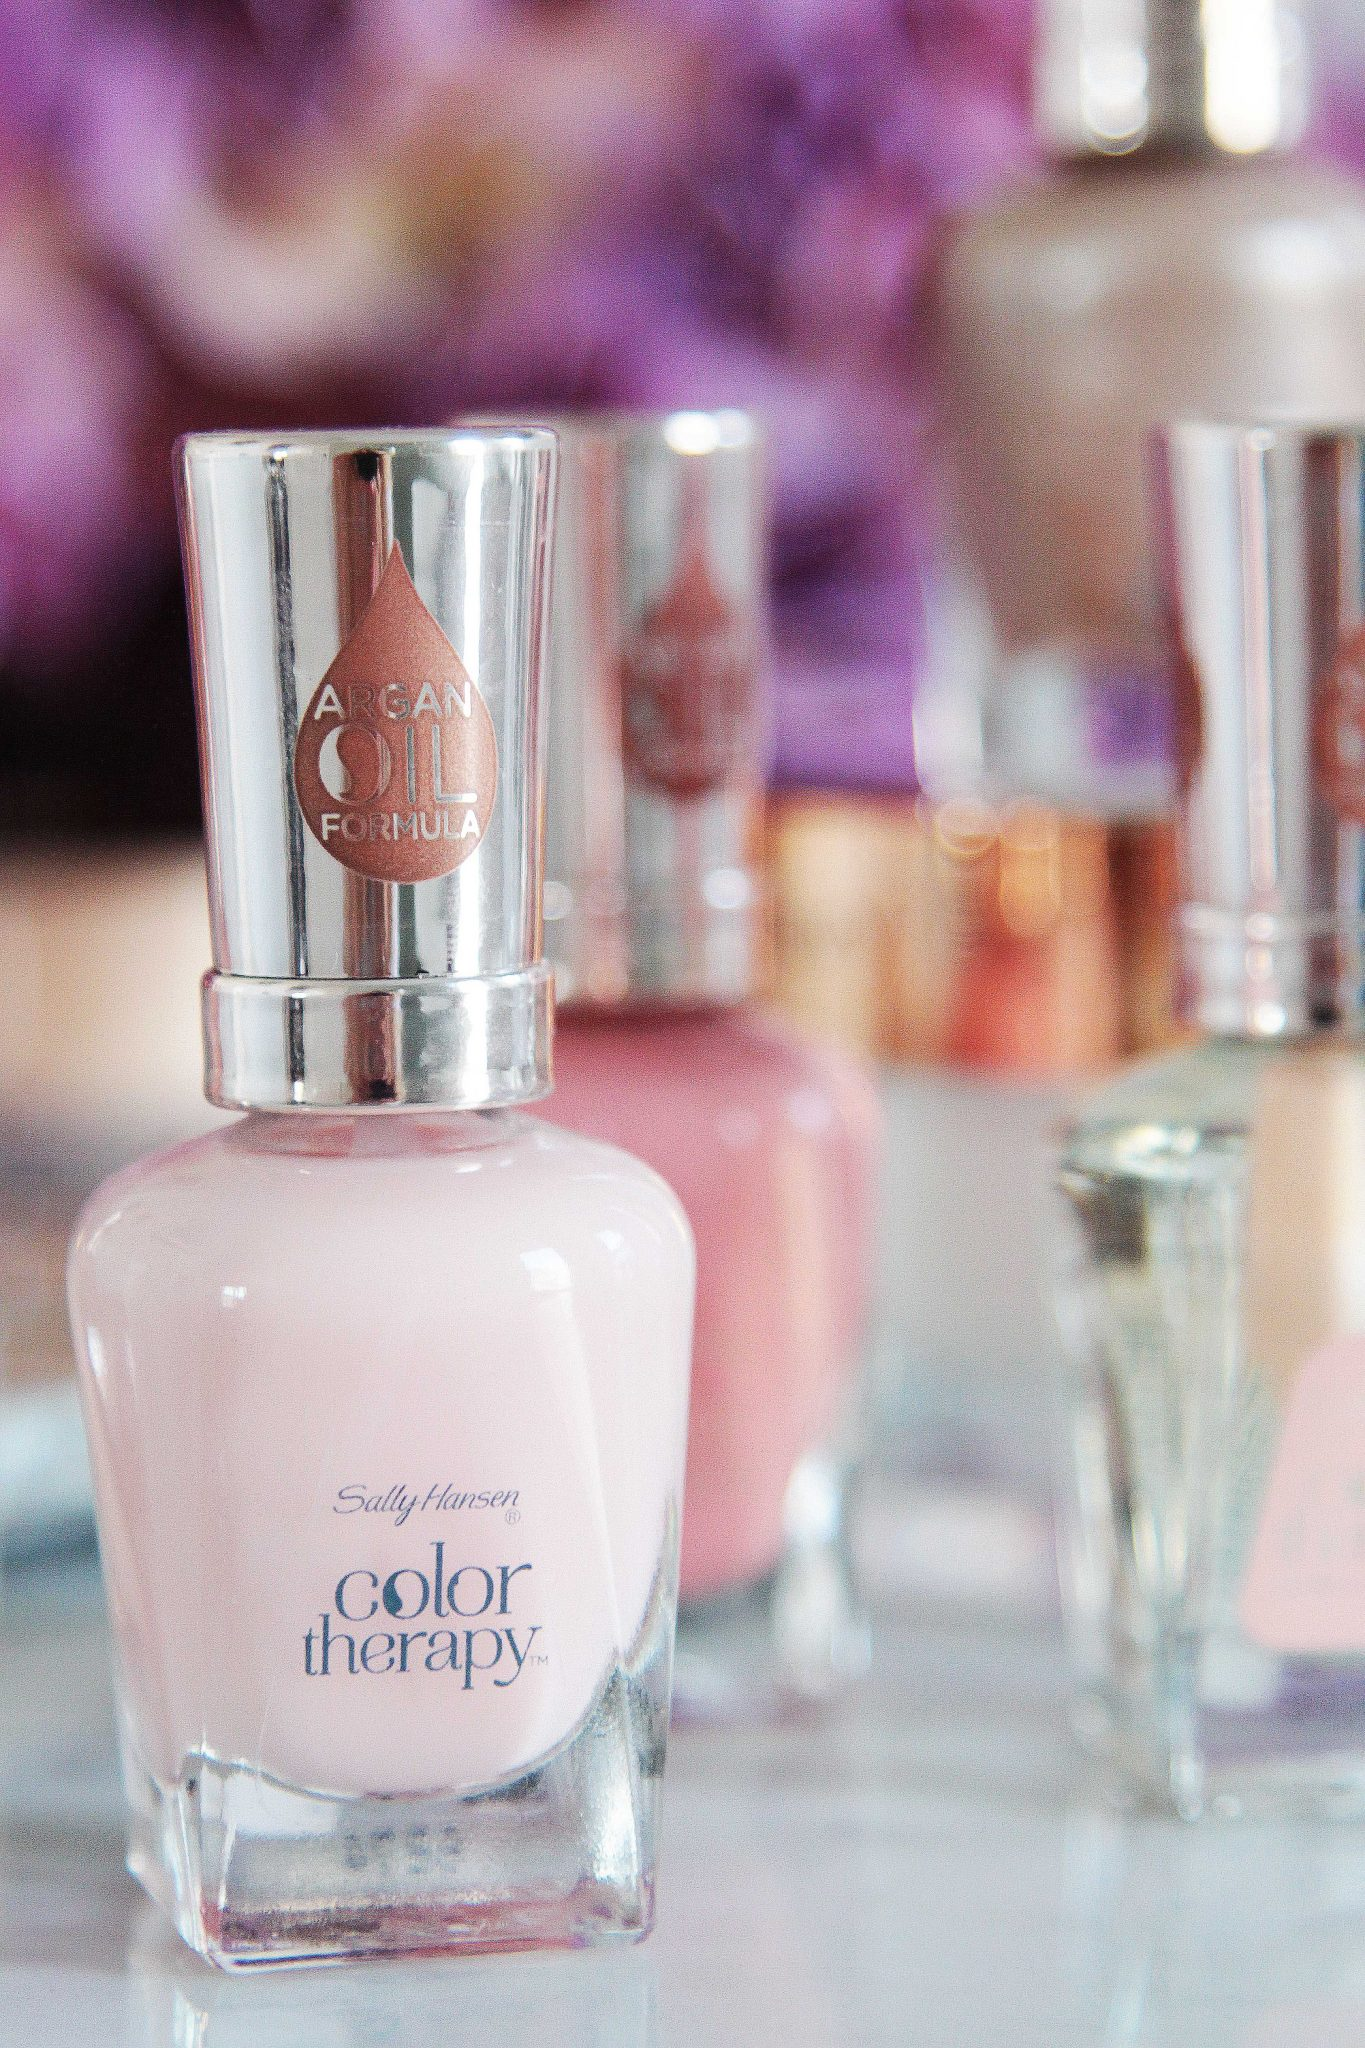 SALLY HANSEN, COLOR THERAPY, COLOUR THERAPY, NAILS, NAIL ART, DIY NAILS, TOP COAT, BEAUTY REVIEW, BEAUTY BLOGGER, SARAH JANE YOUNG, SHEISSARAHJANE